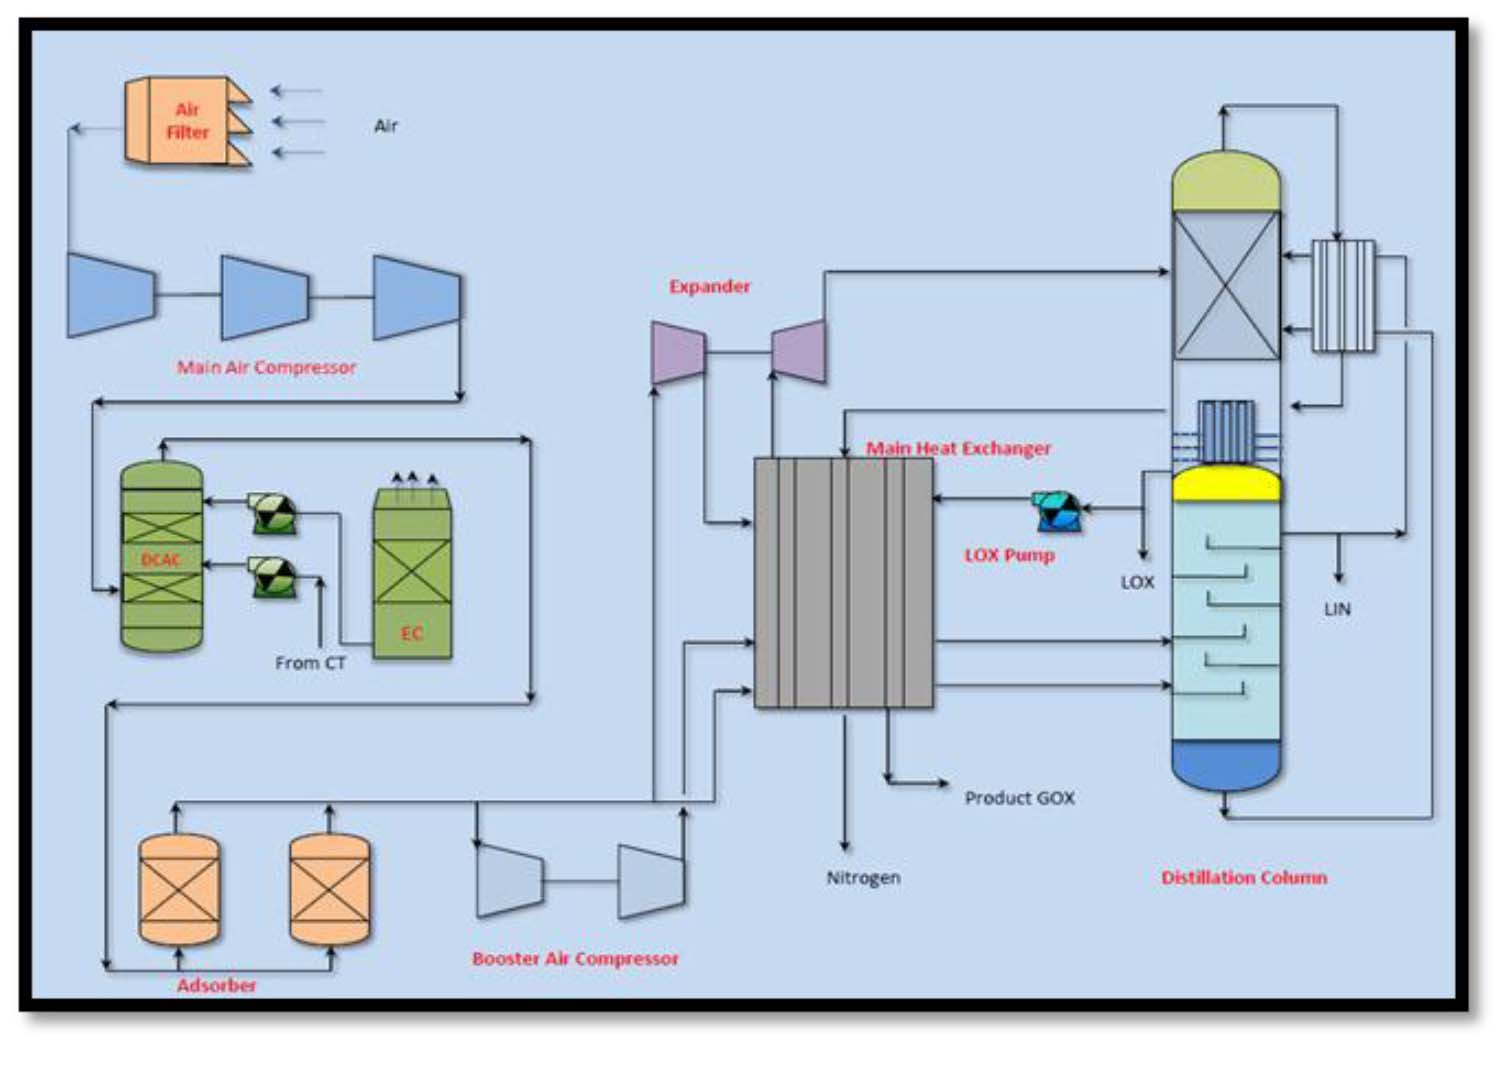 M S Essar Steel India Limited Pdf Peninsula Counters Wiring Code Furthermore Pulse Converter Circuit Pure Liquid Argon Is Withdrawn As Product Lar From The Sump Of